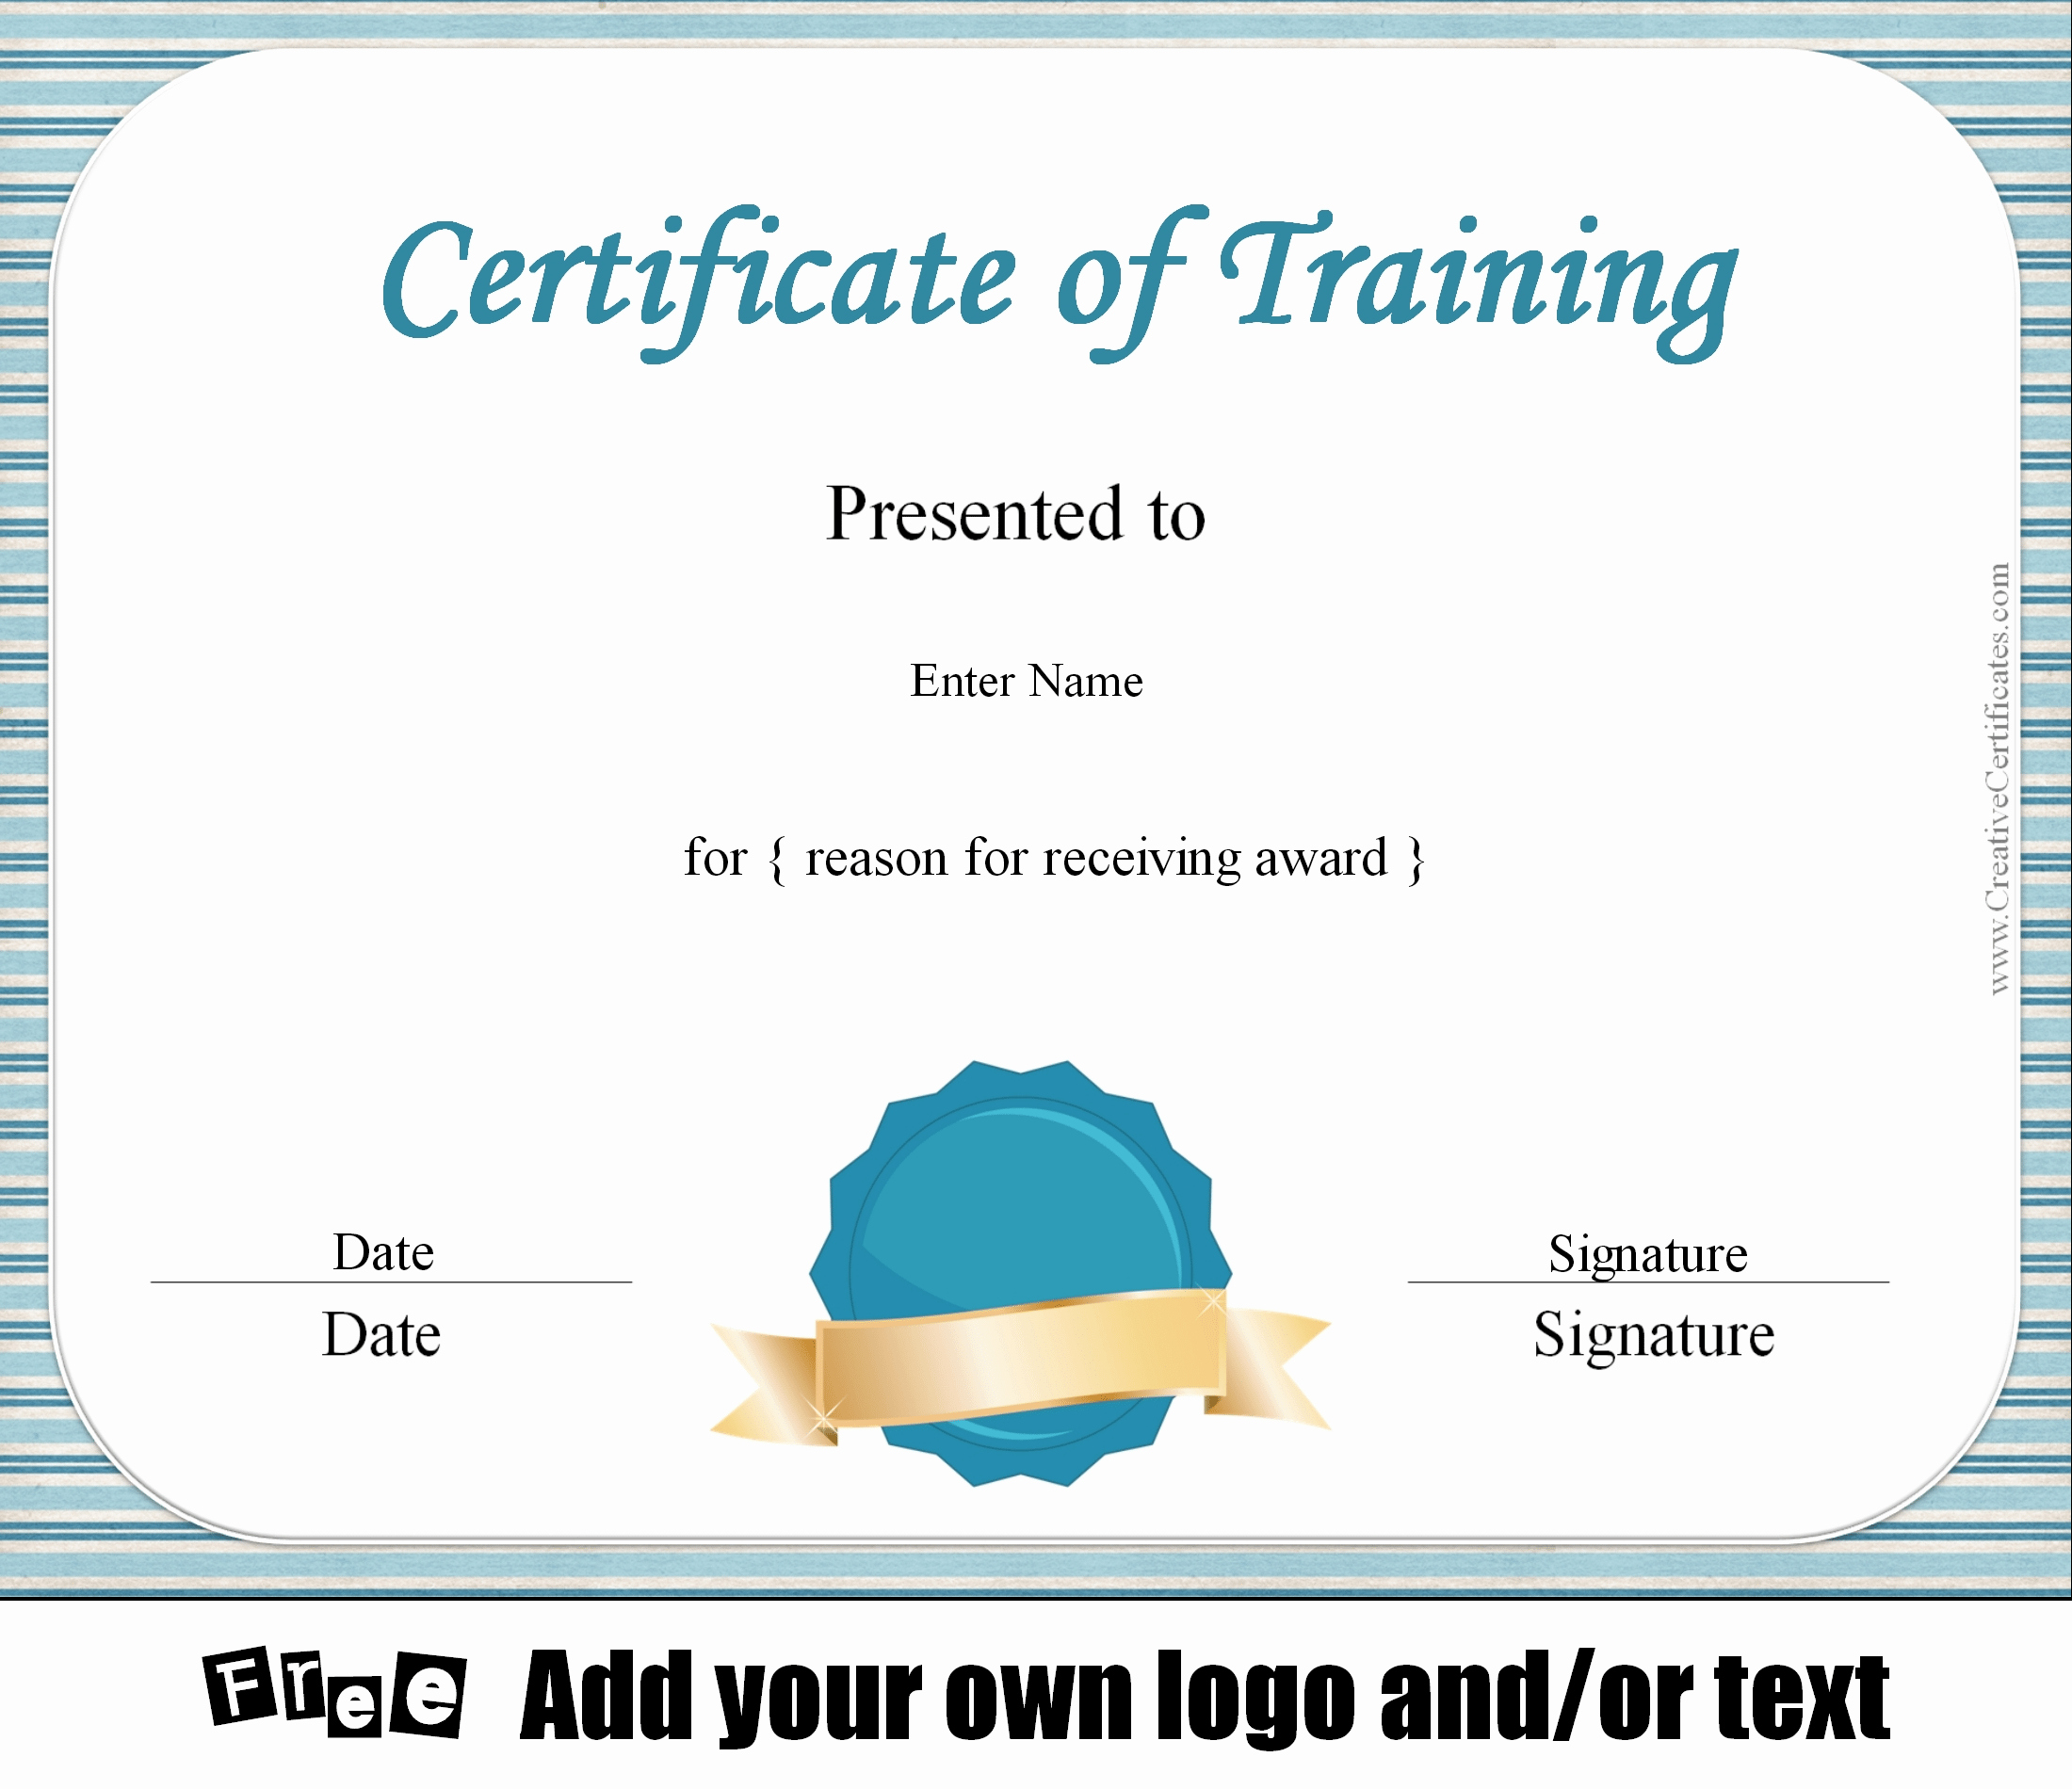 Training Certificate Template Free Awesome Free Certificate Of Training Template Customizable